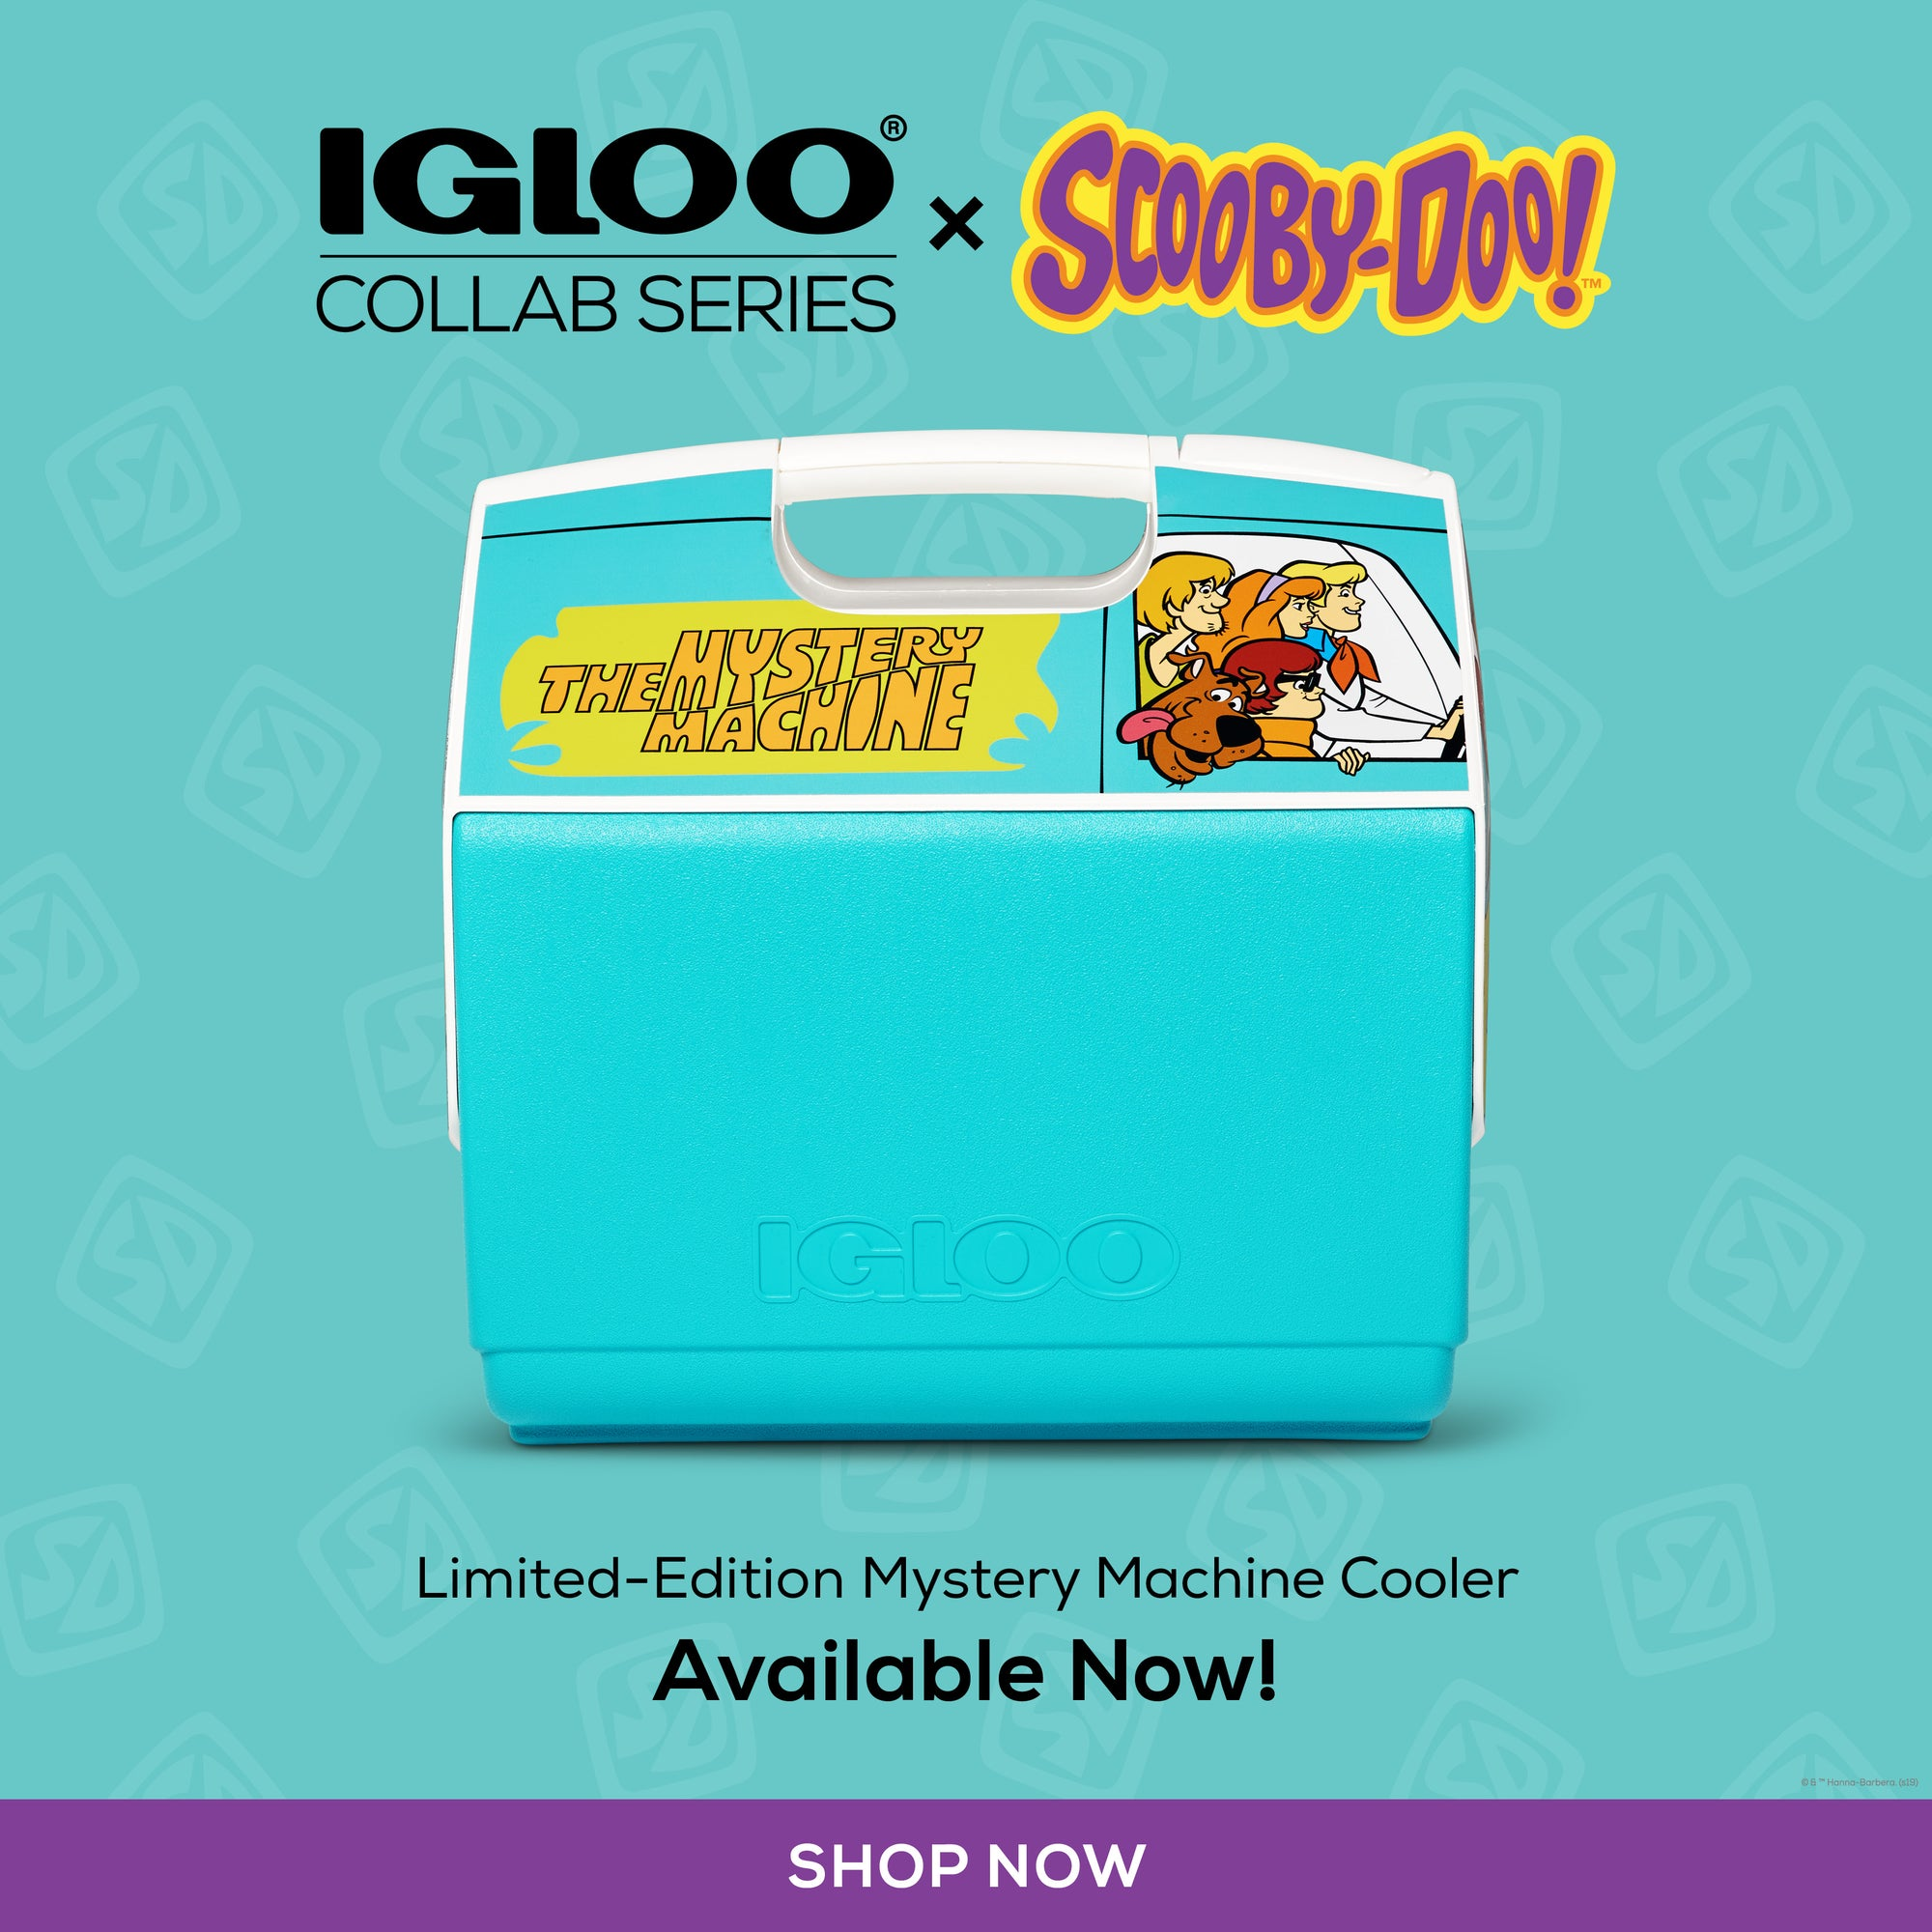 Igloo Collab Series - Scooby Doo Playmate Elite